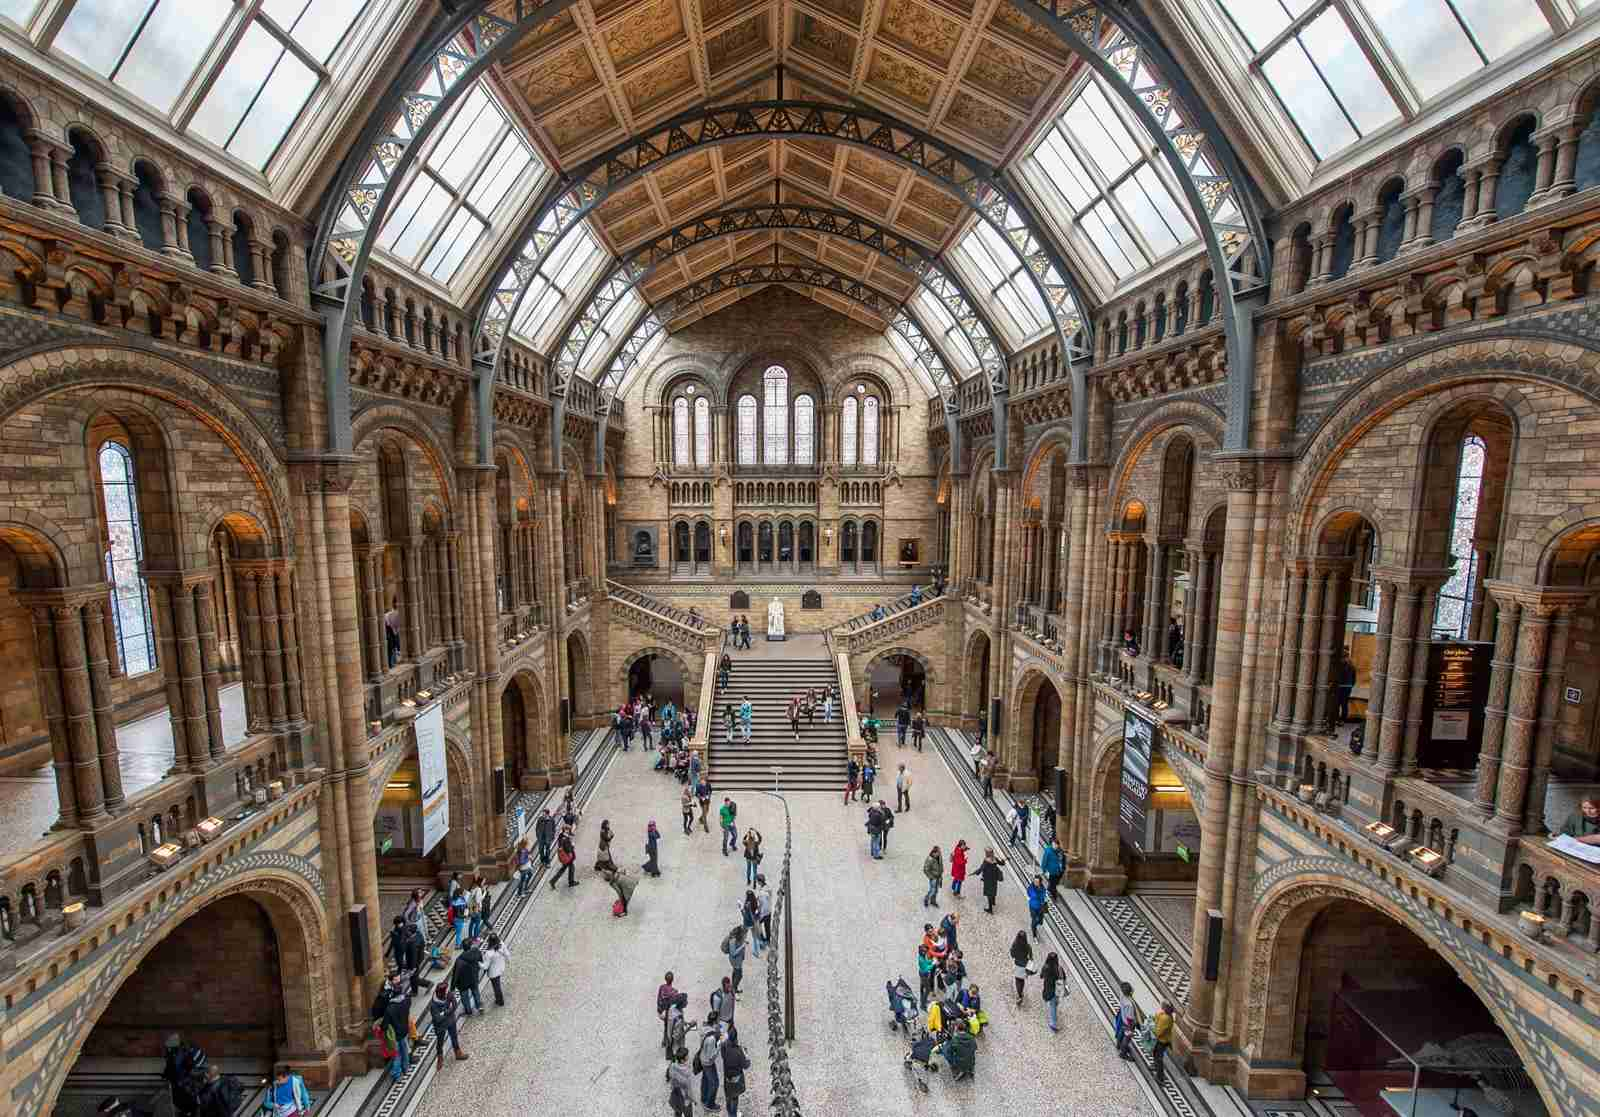 The Natural History Museum in London. (Photo by Tim Grist Photography/Getty Images)